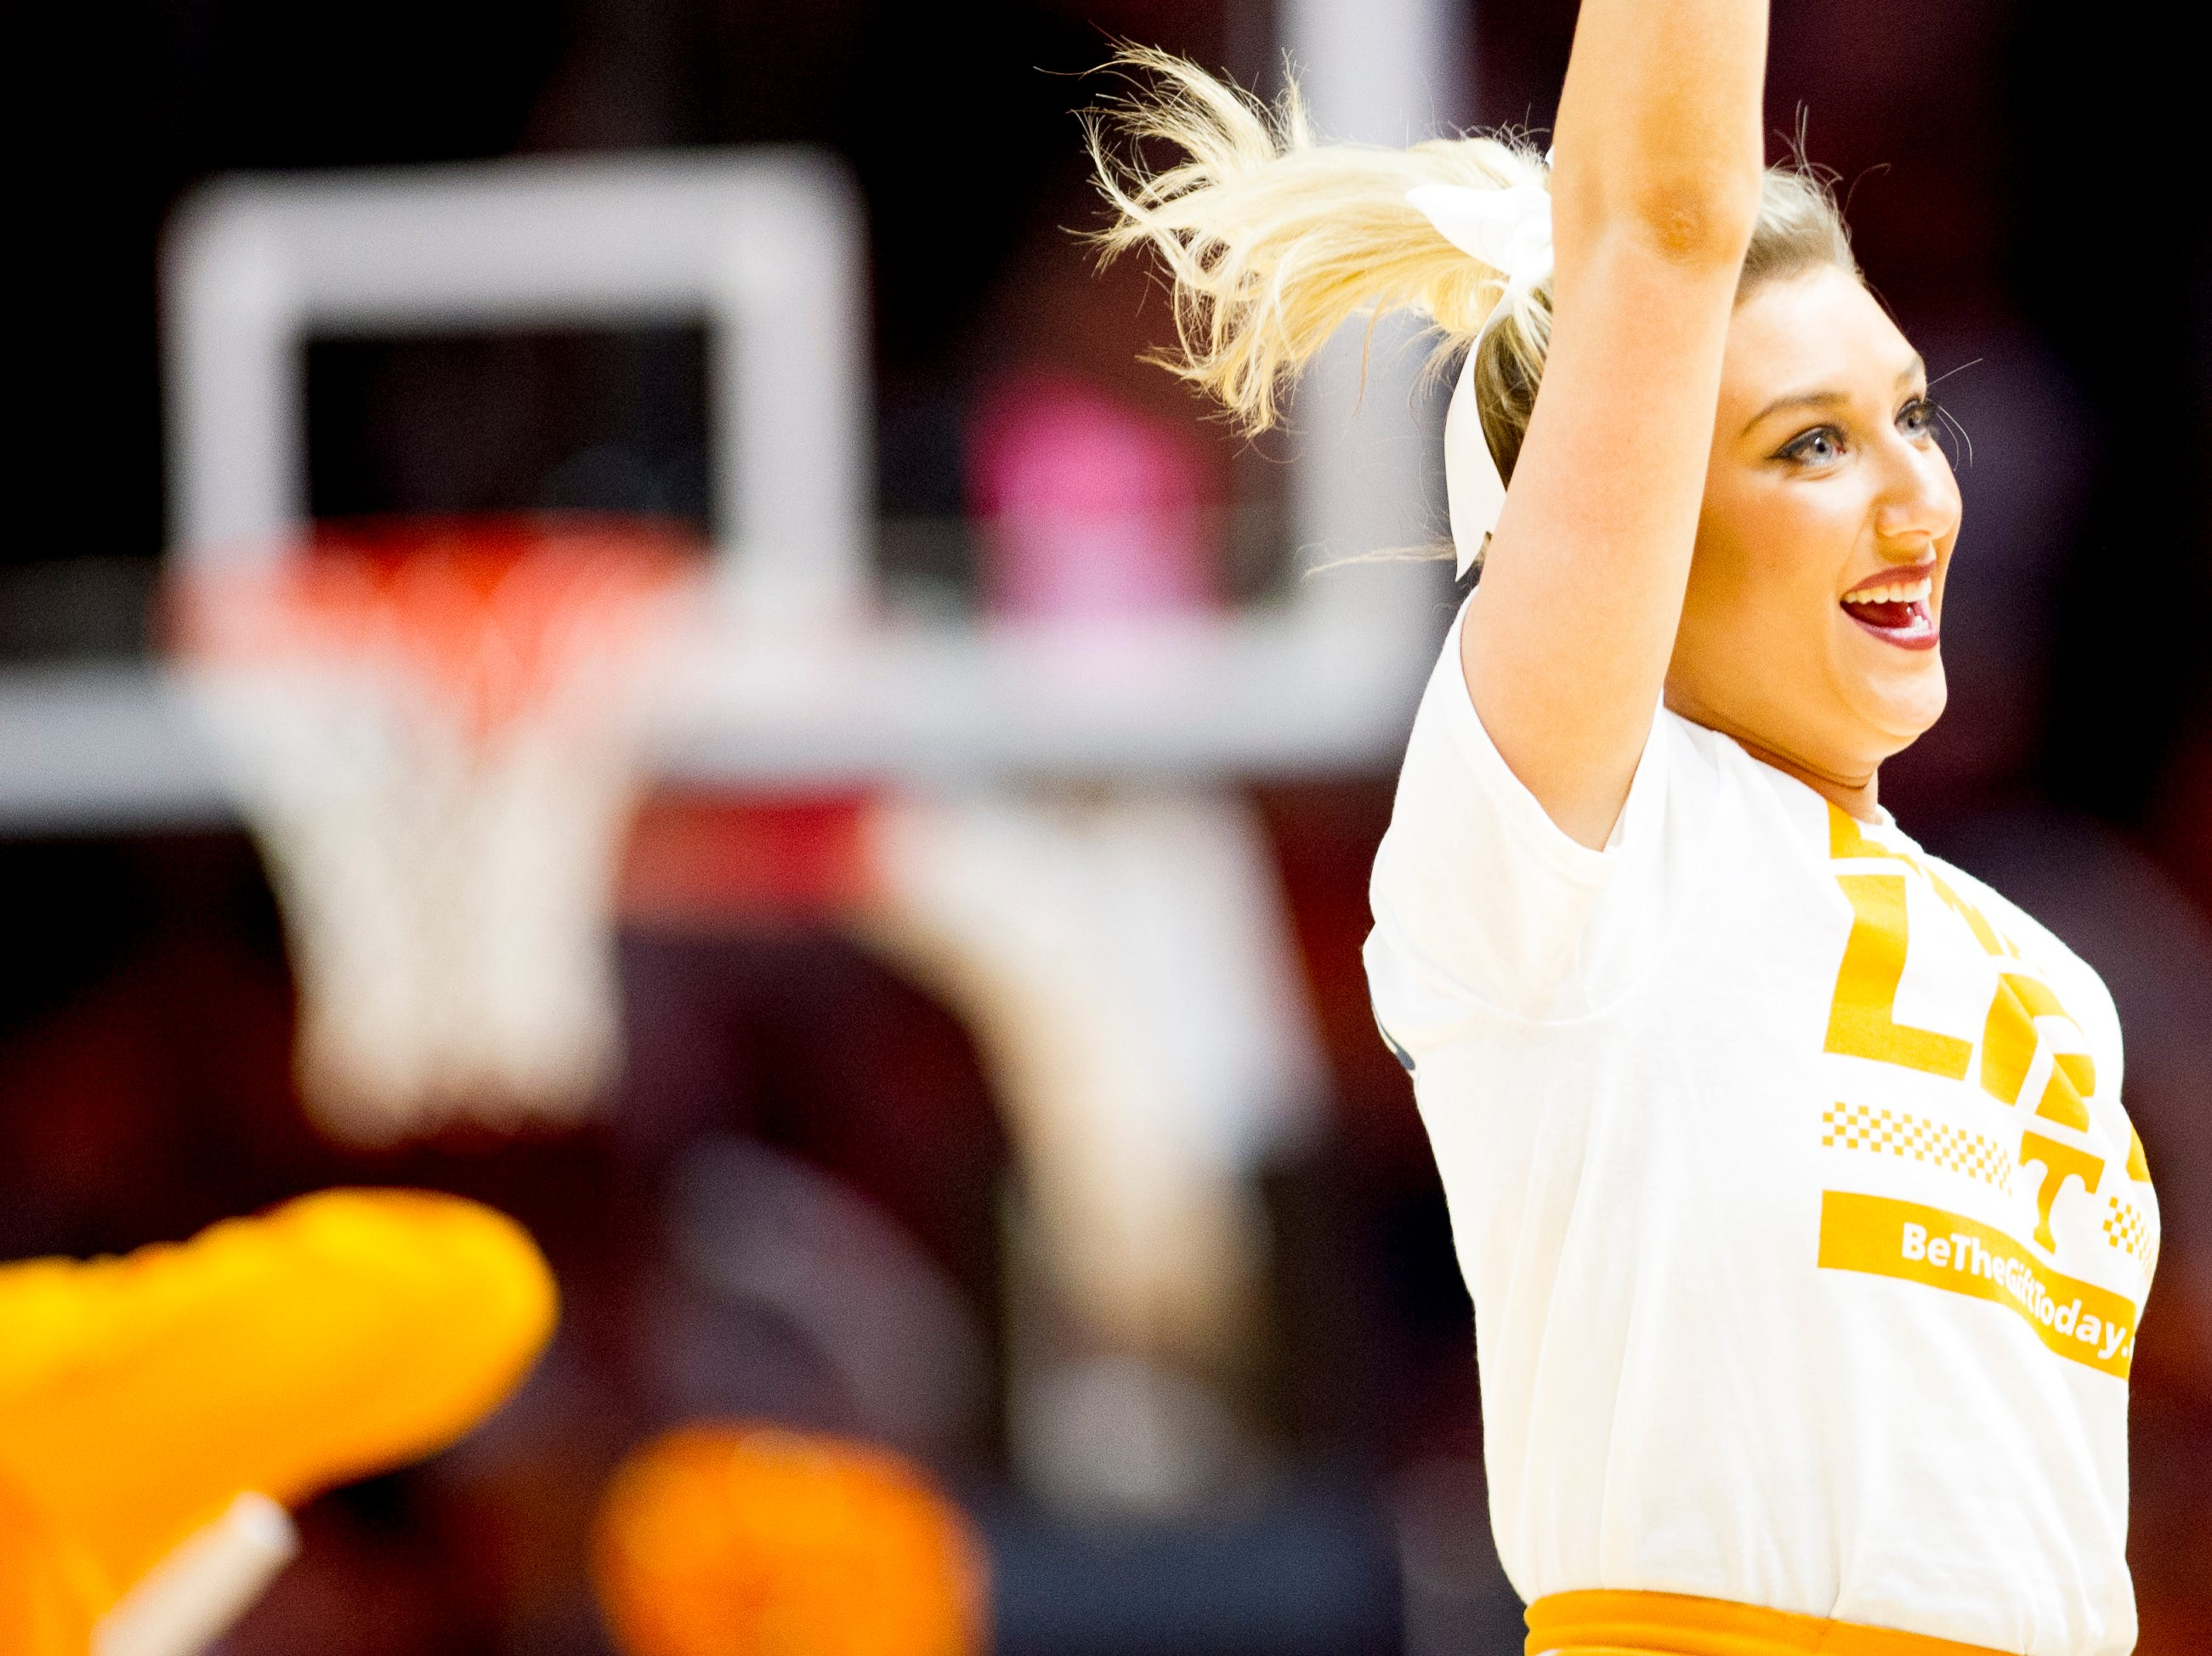 A Tennessee cheerleader cheers during a game between Tennessee and Vanderbilt at Thompson-Boling Arena in Knoxville, Tennessee on Tuesday, February 19, 2019.